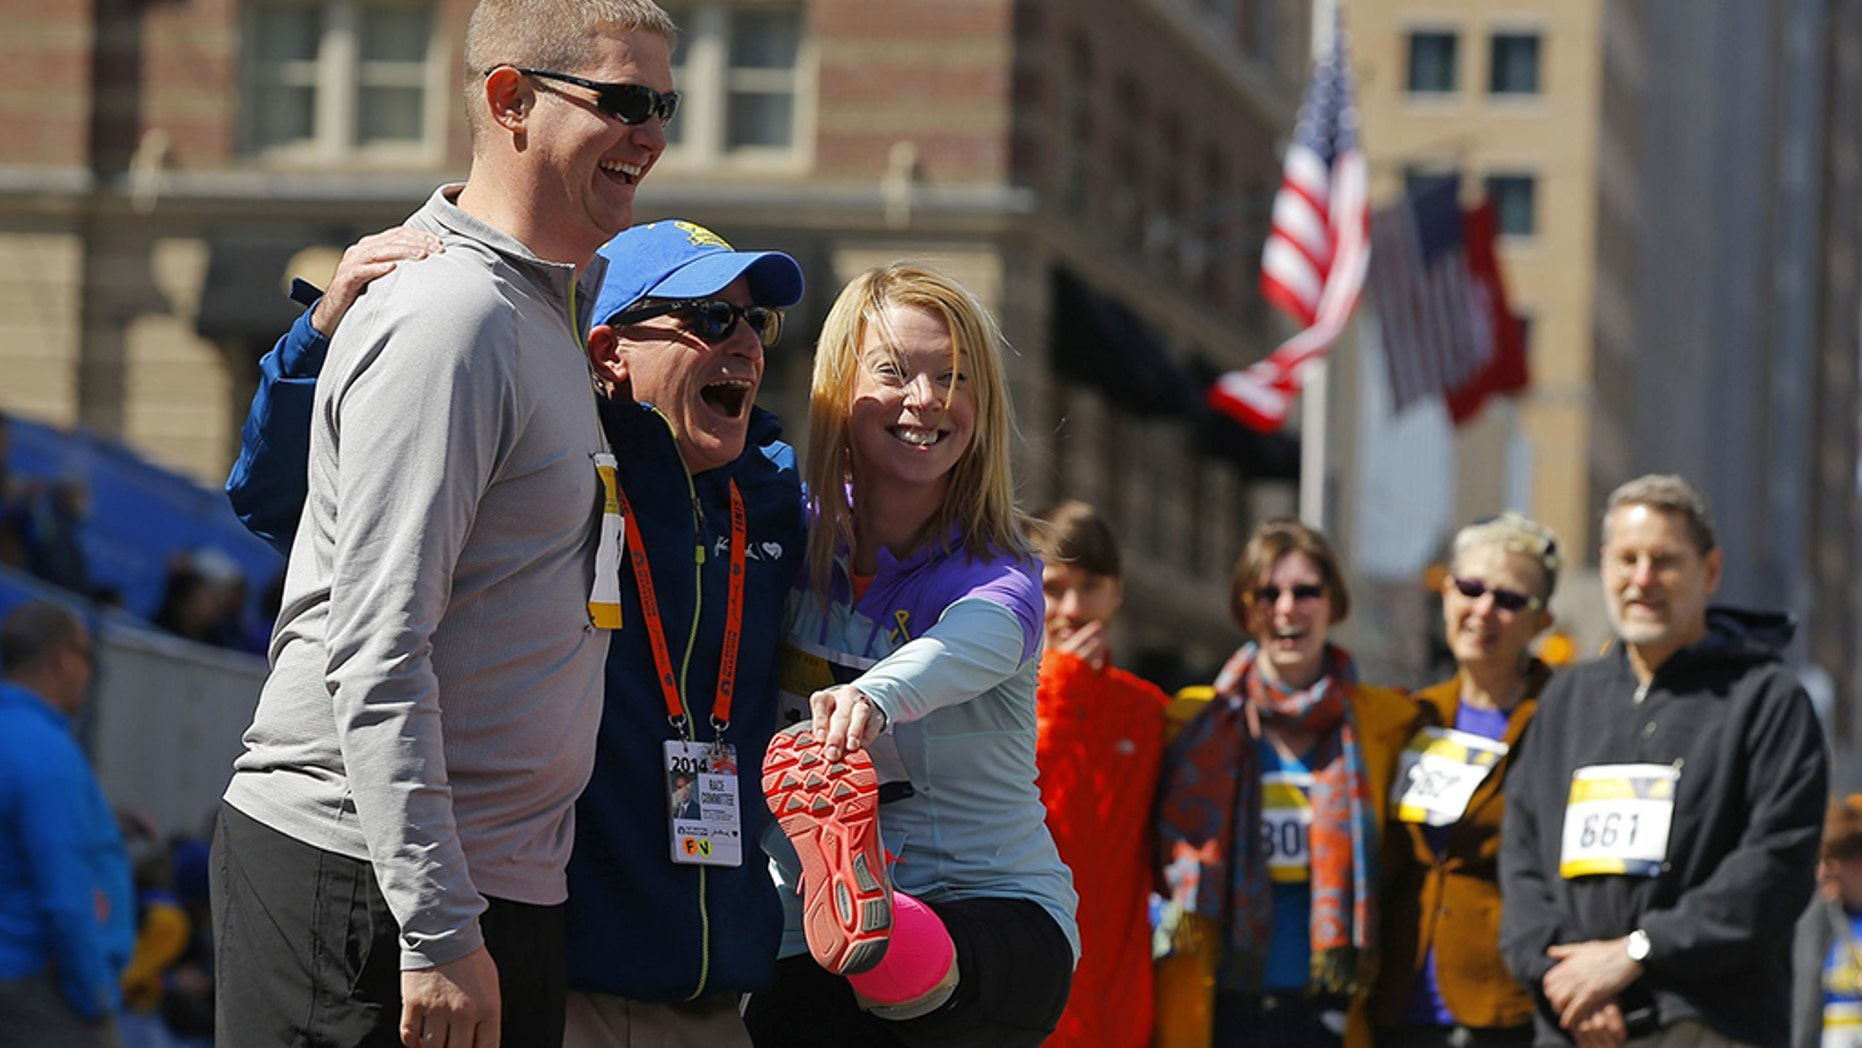 'I'm Completely Broken': Boston Marathon Bombing Survivor Adrianne Haslet Hit By Car